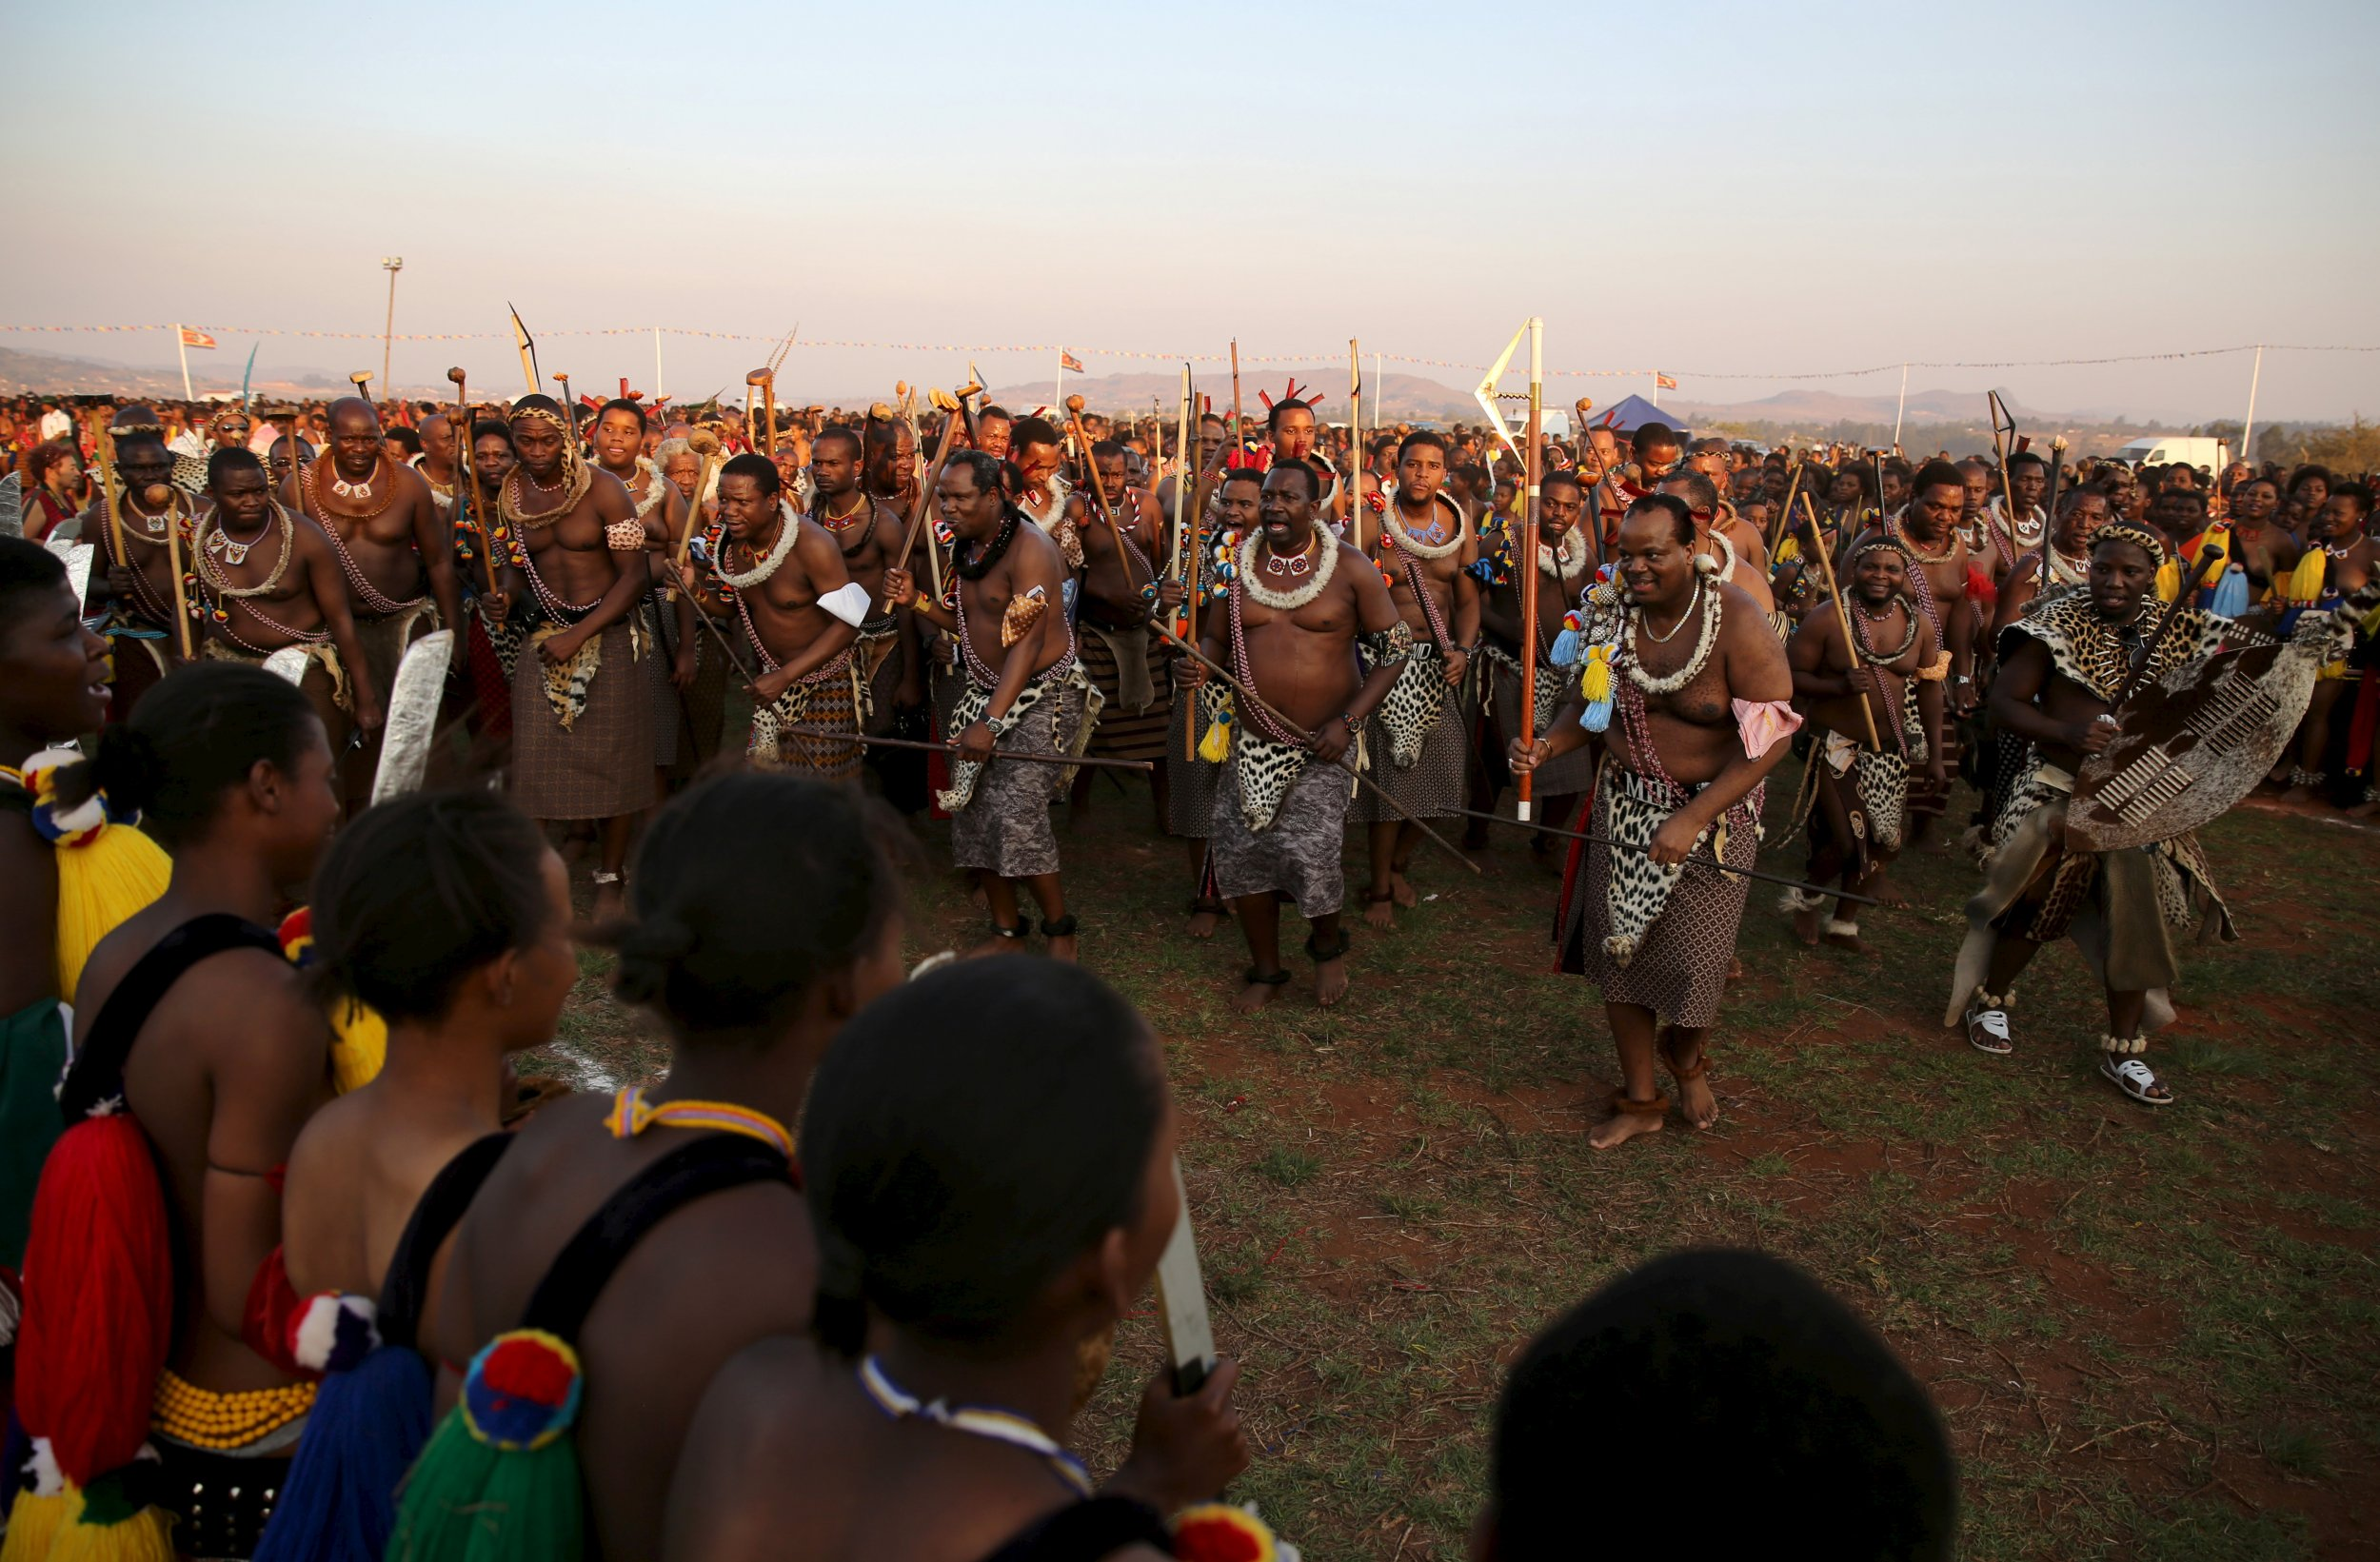 King Mswati III reed dance